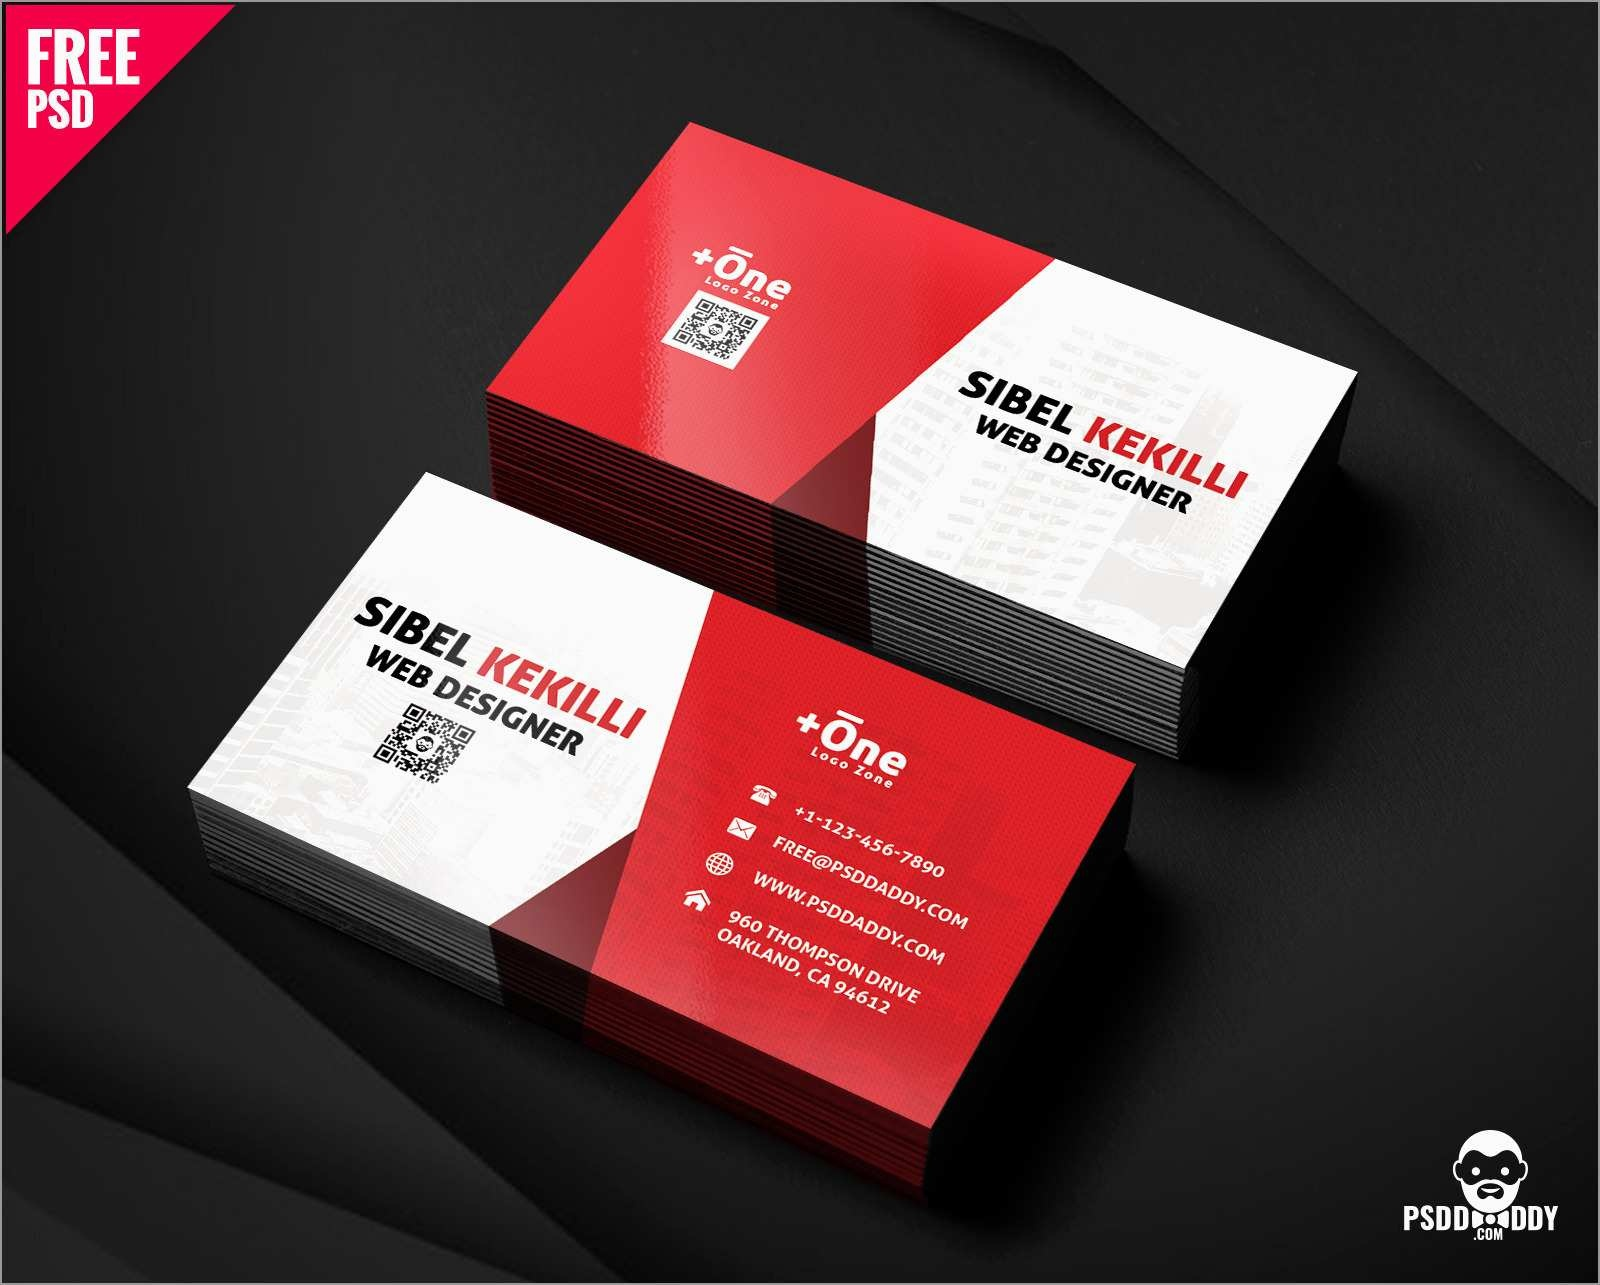 New Business Card Template Maker Free | Best Of Template - Free Printable Business Card Maker